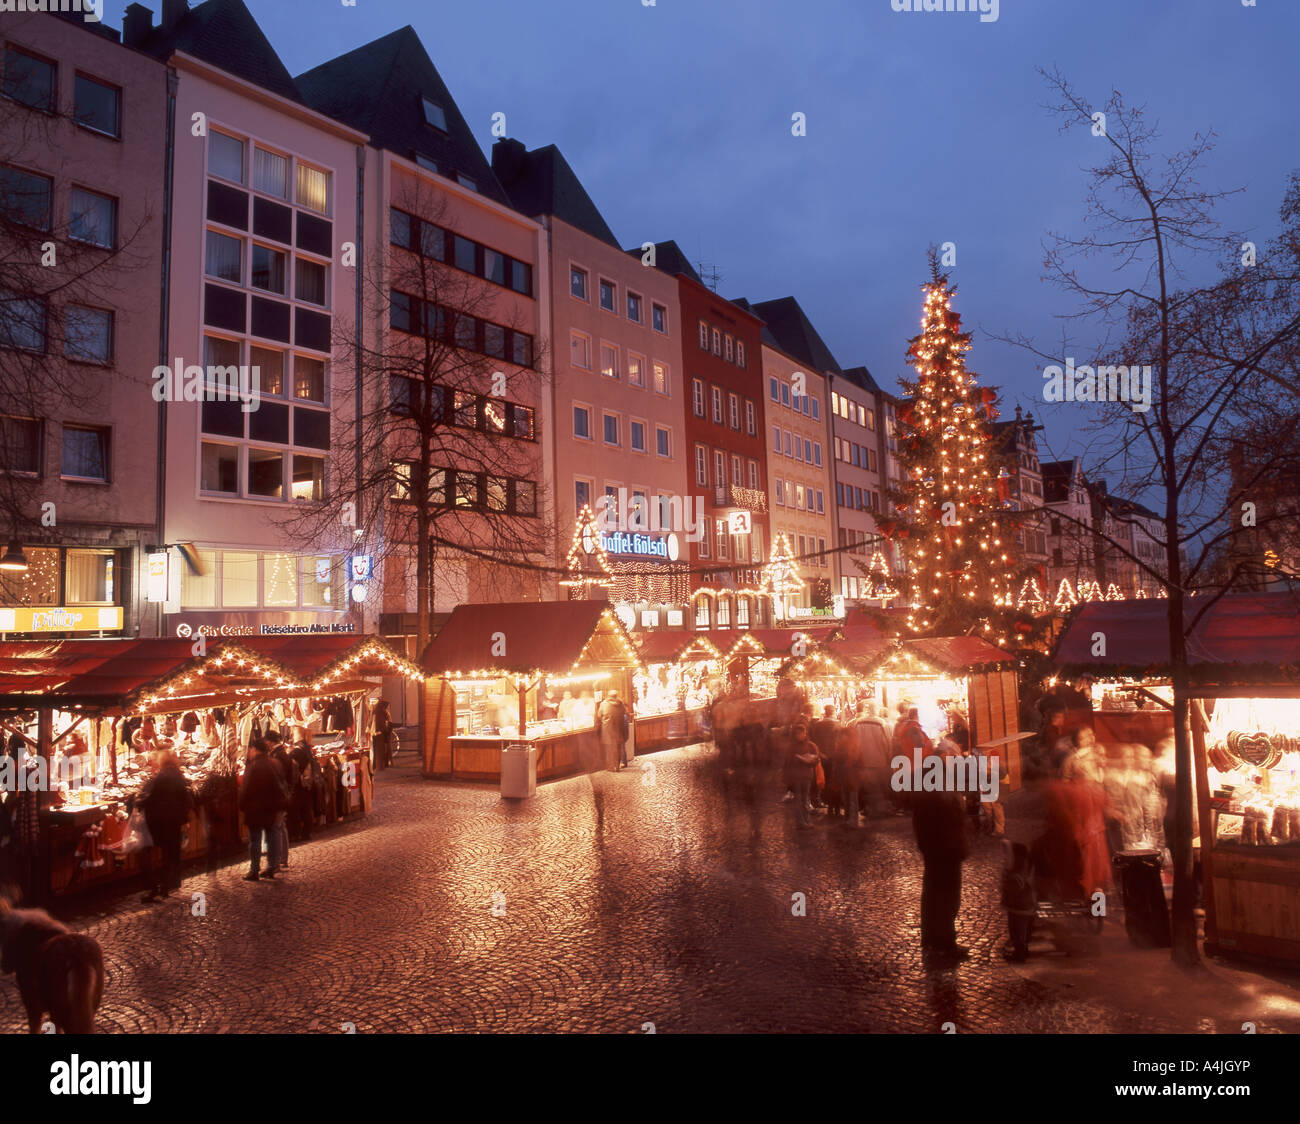 alter markt christmas market at dusk cologne koln stock photo royalty free image 11063241. Black Bedroom Furniture Sets. Home Design Ideas